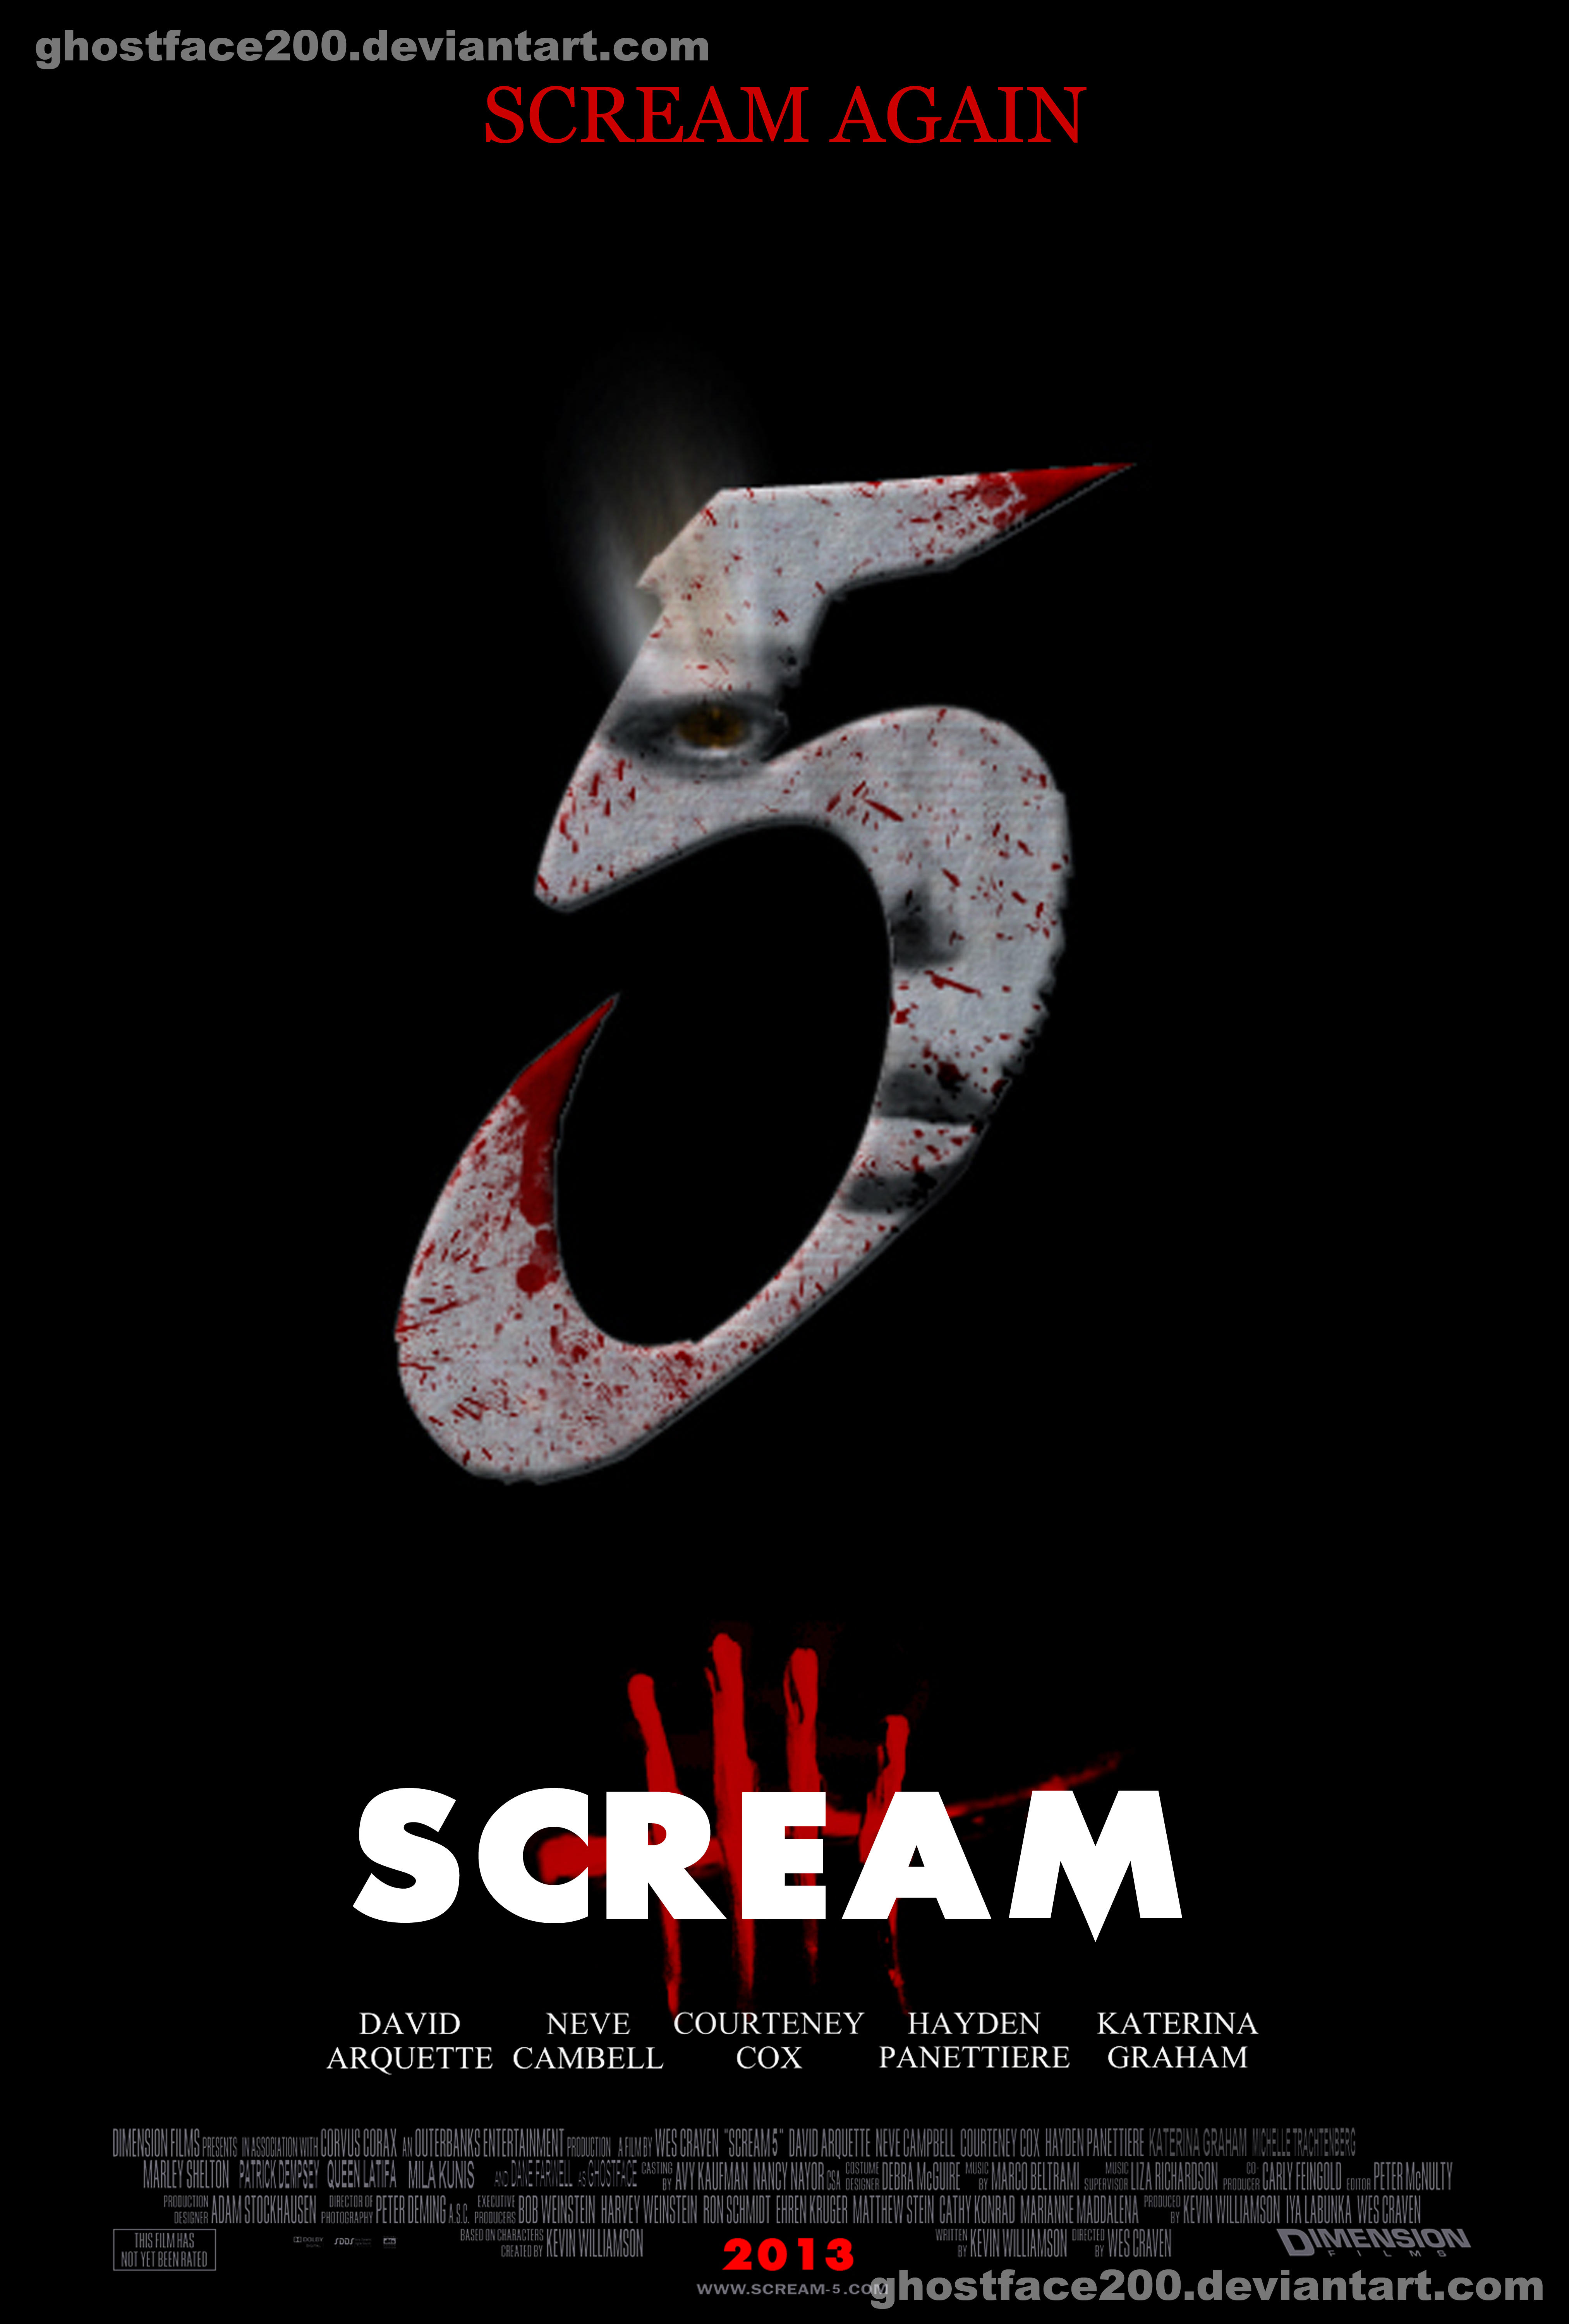 Scream 5 - Number Poster by Ghostface2000 on DeviantArt